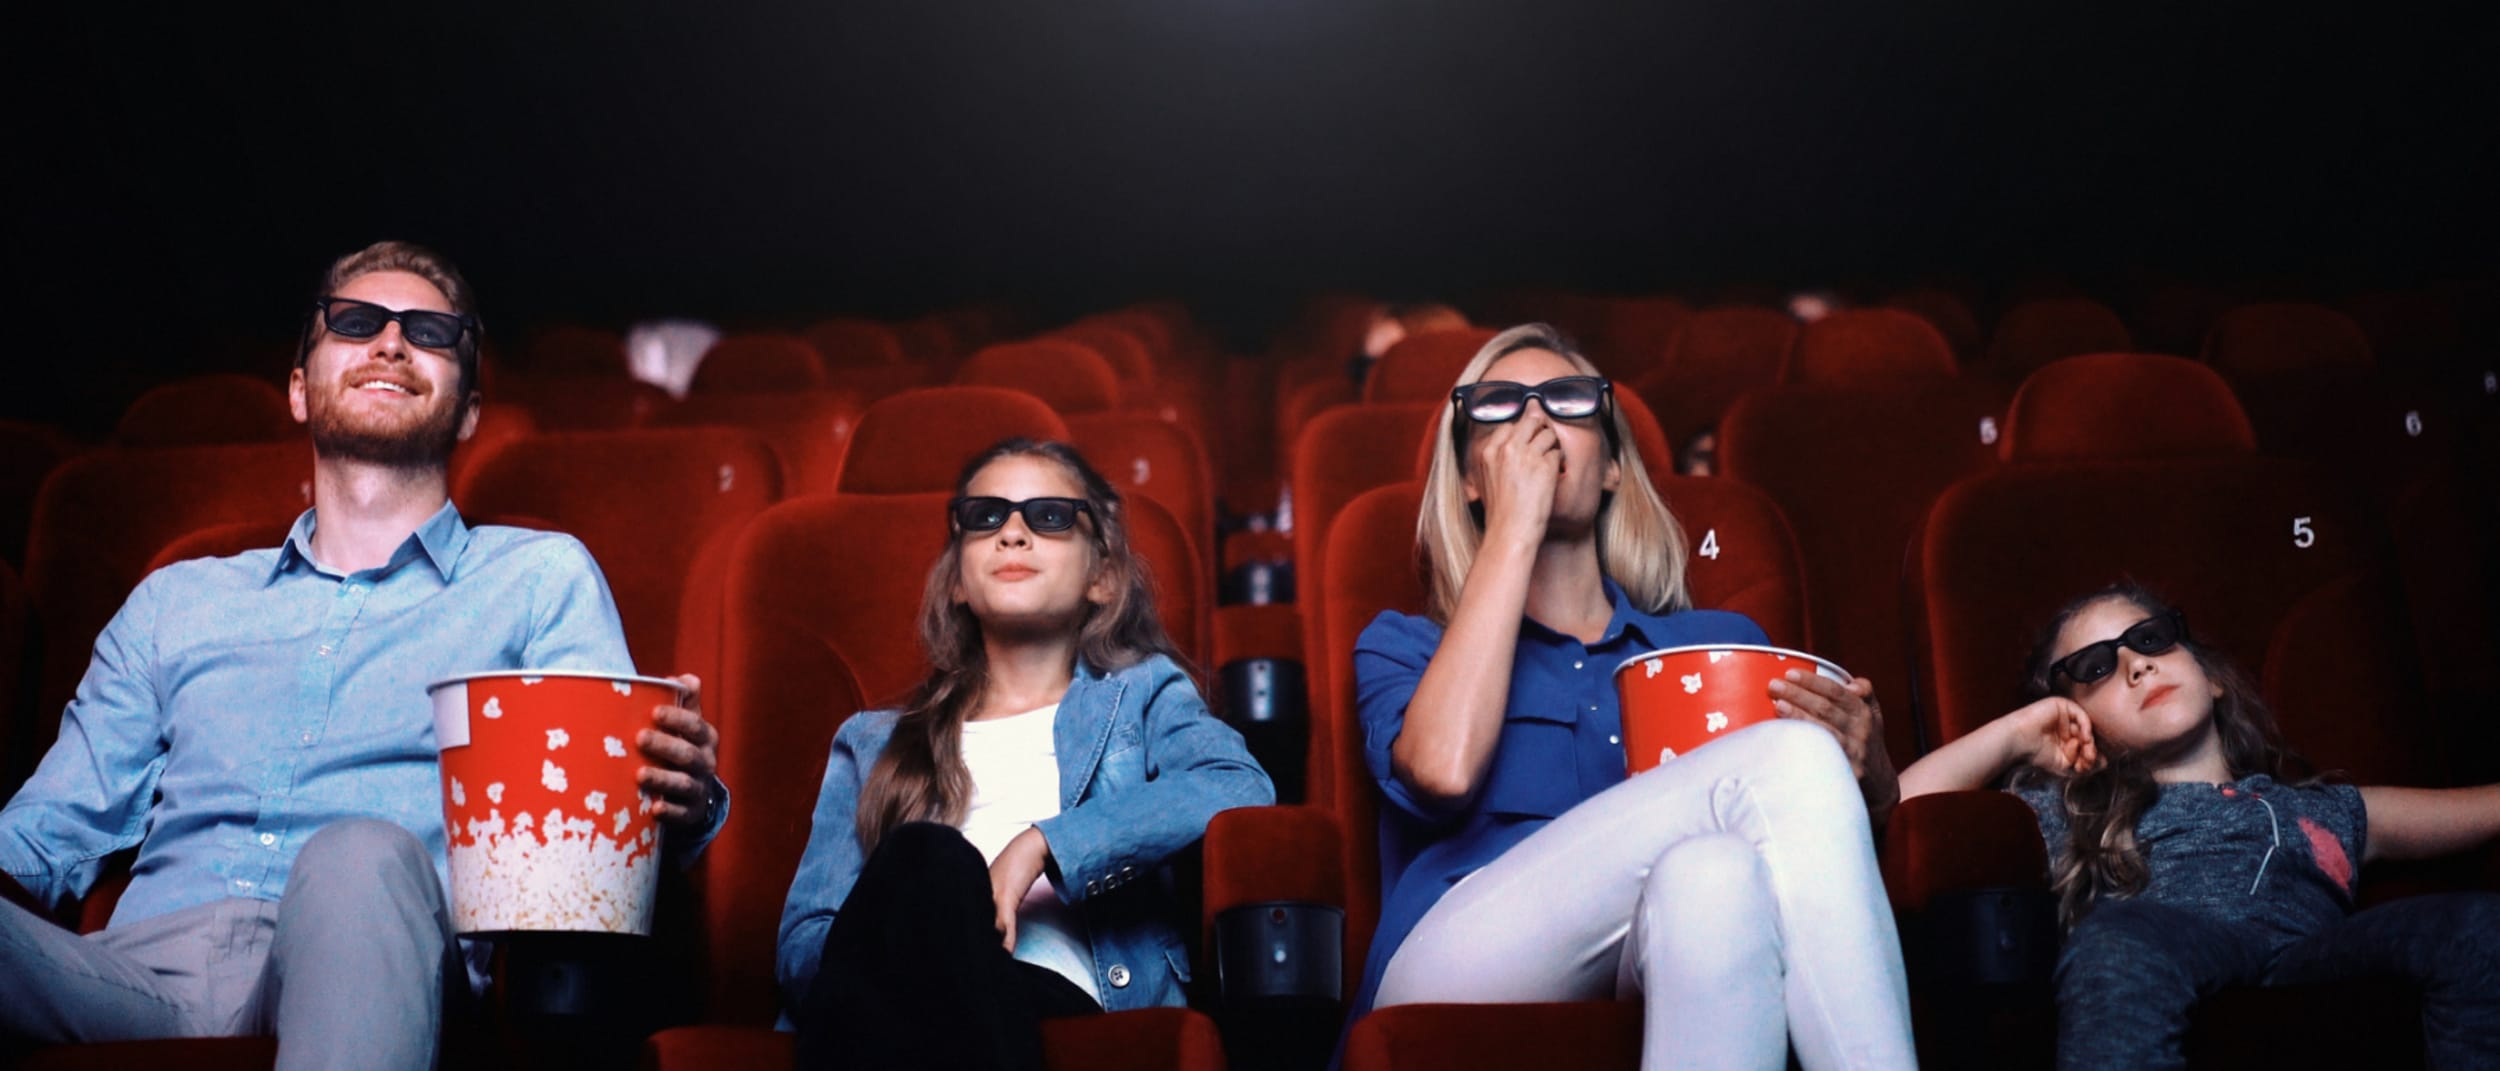 HOYTS: Families pay less